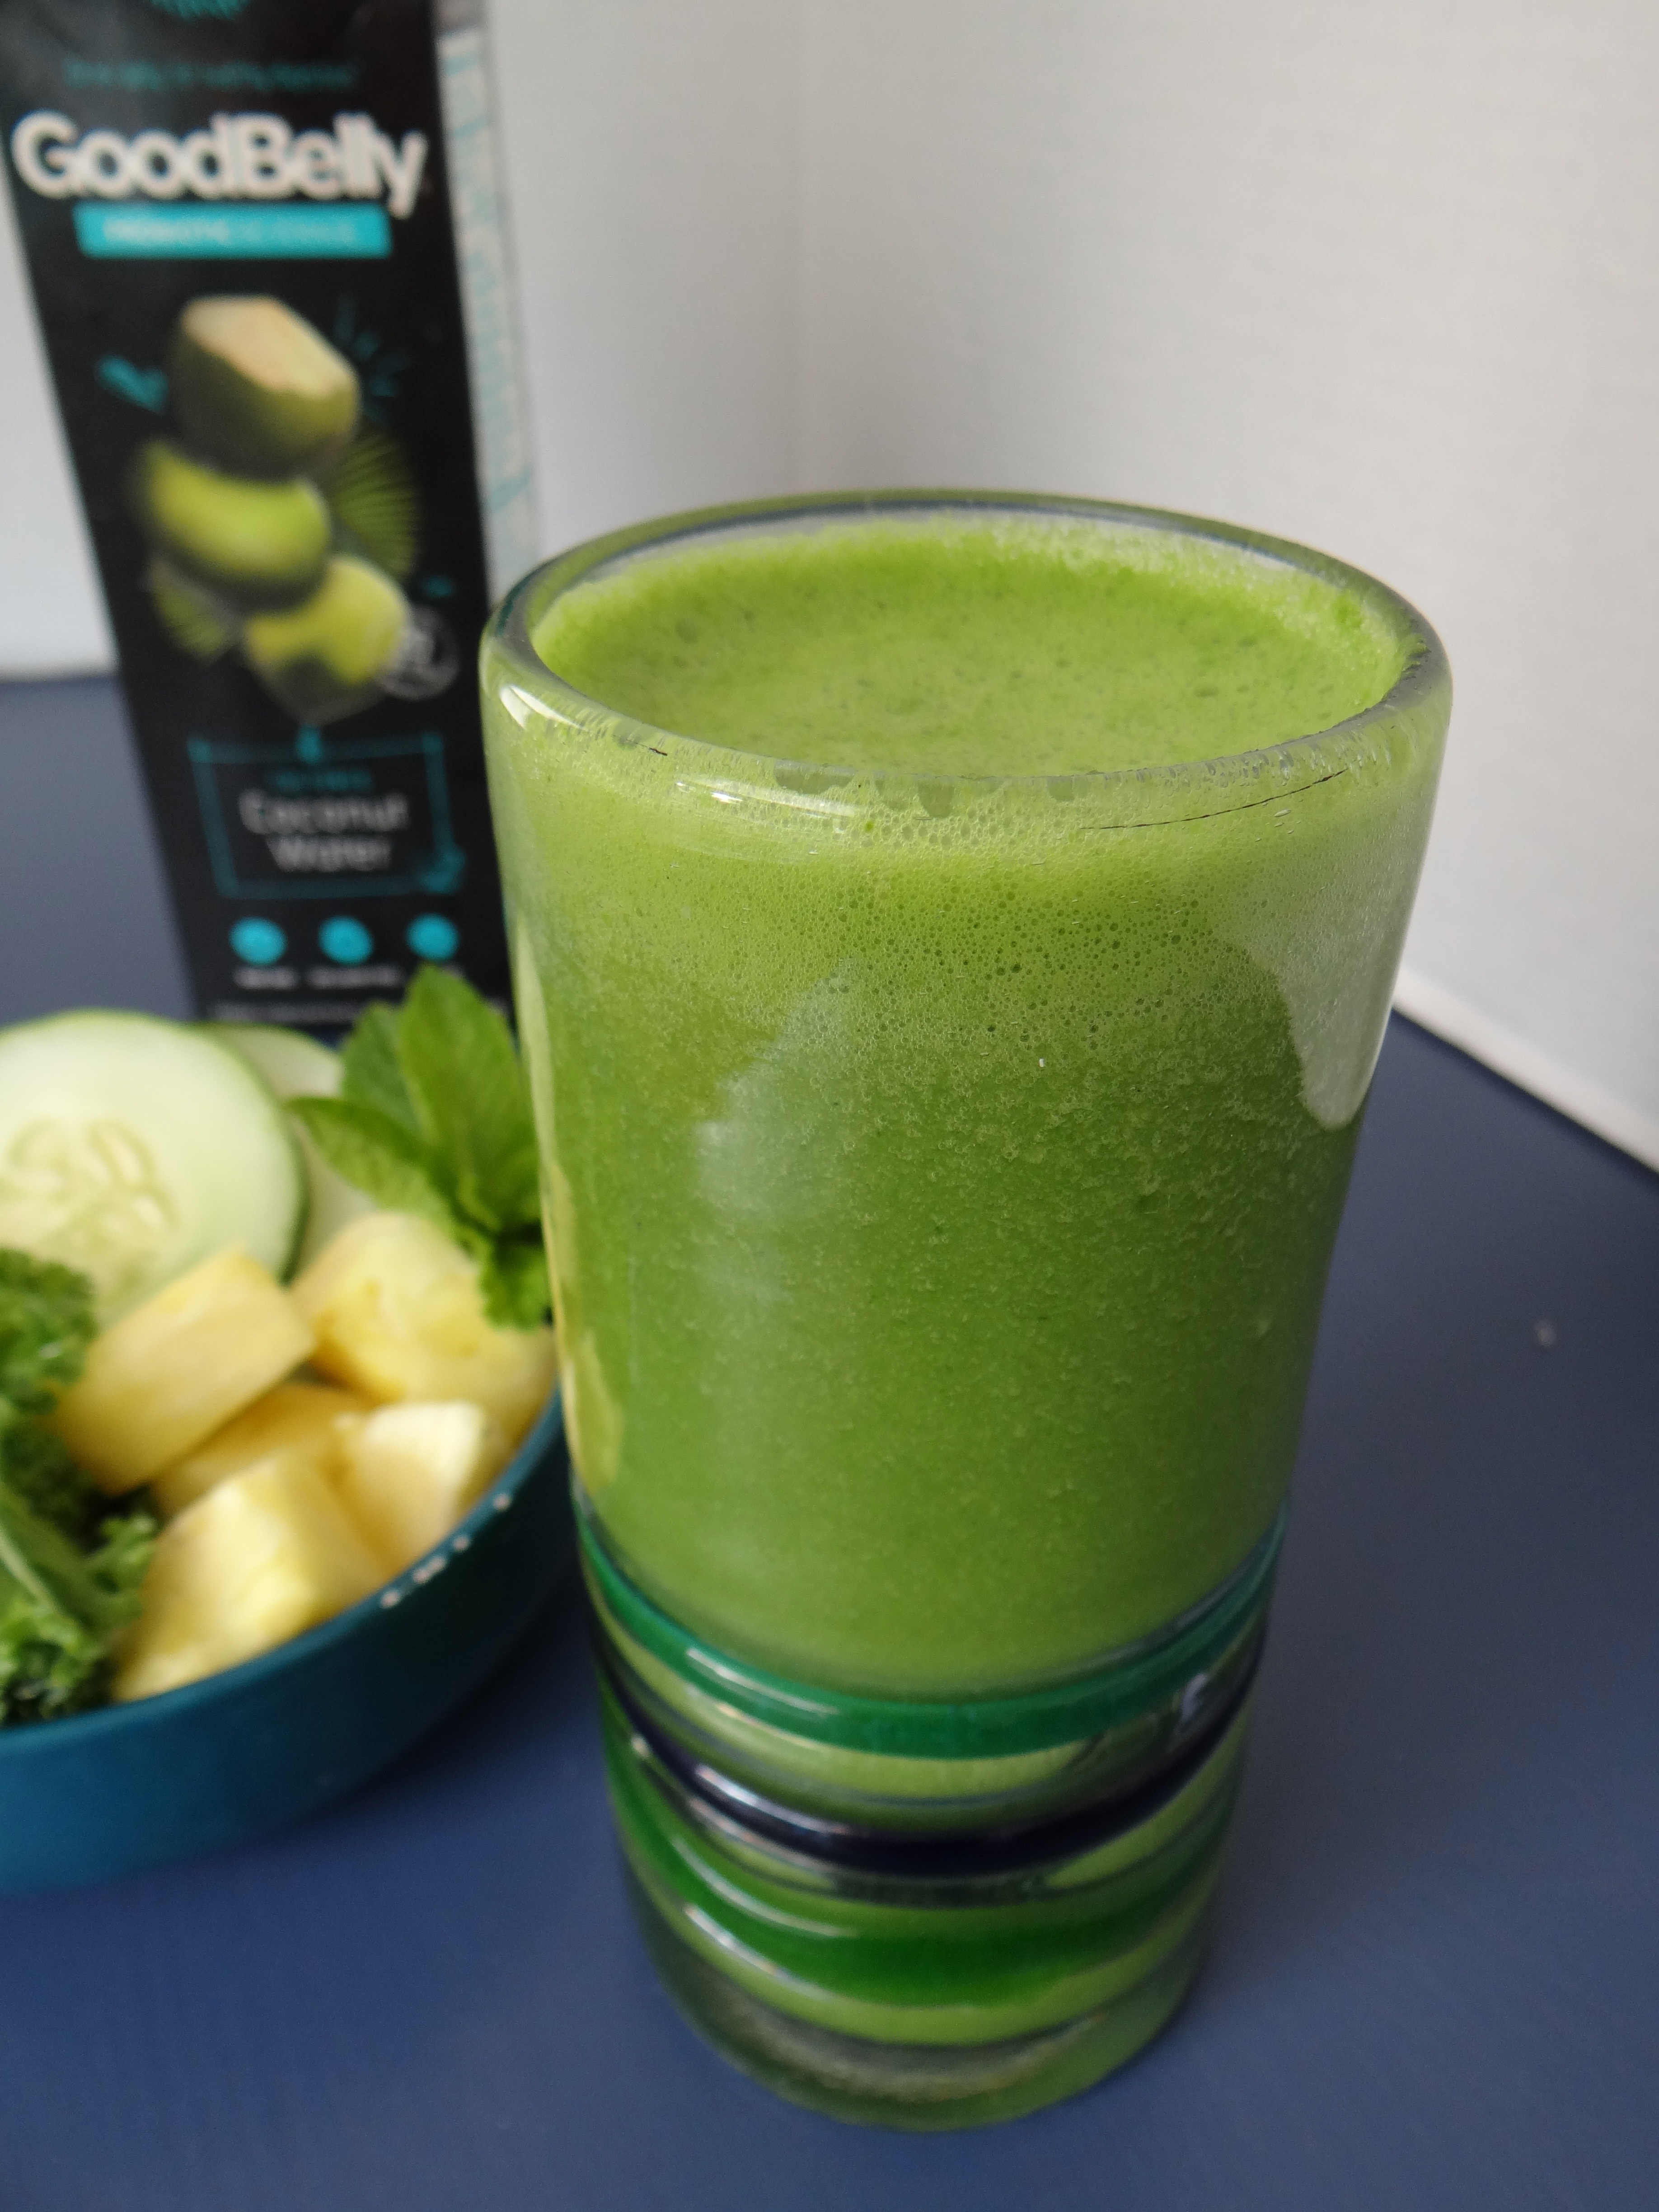 Pineapple Cucumber Kale Smoothie